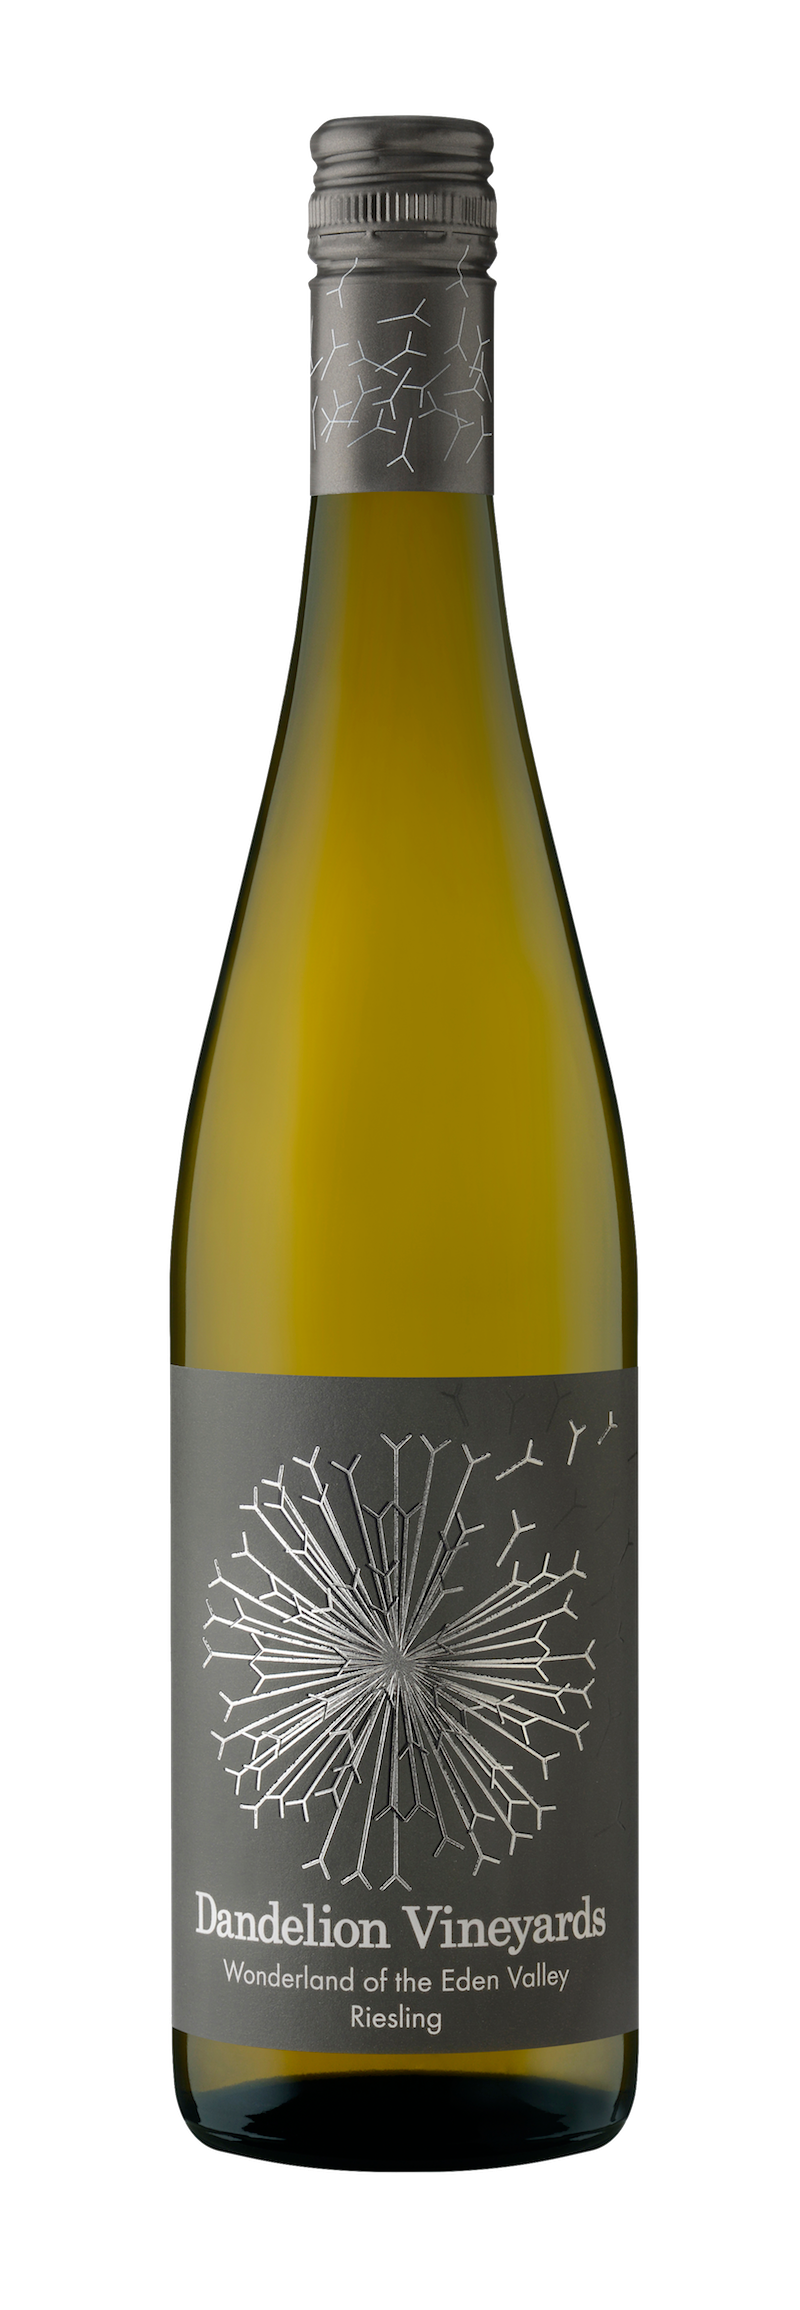 2018 Dandelion Vineyards Wonderland Eden Valley Riesling